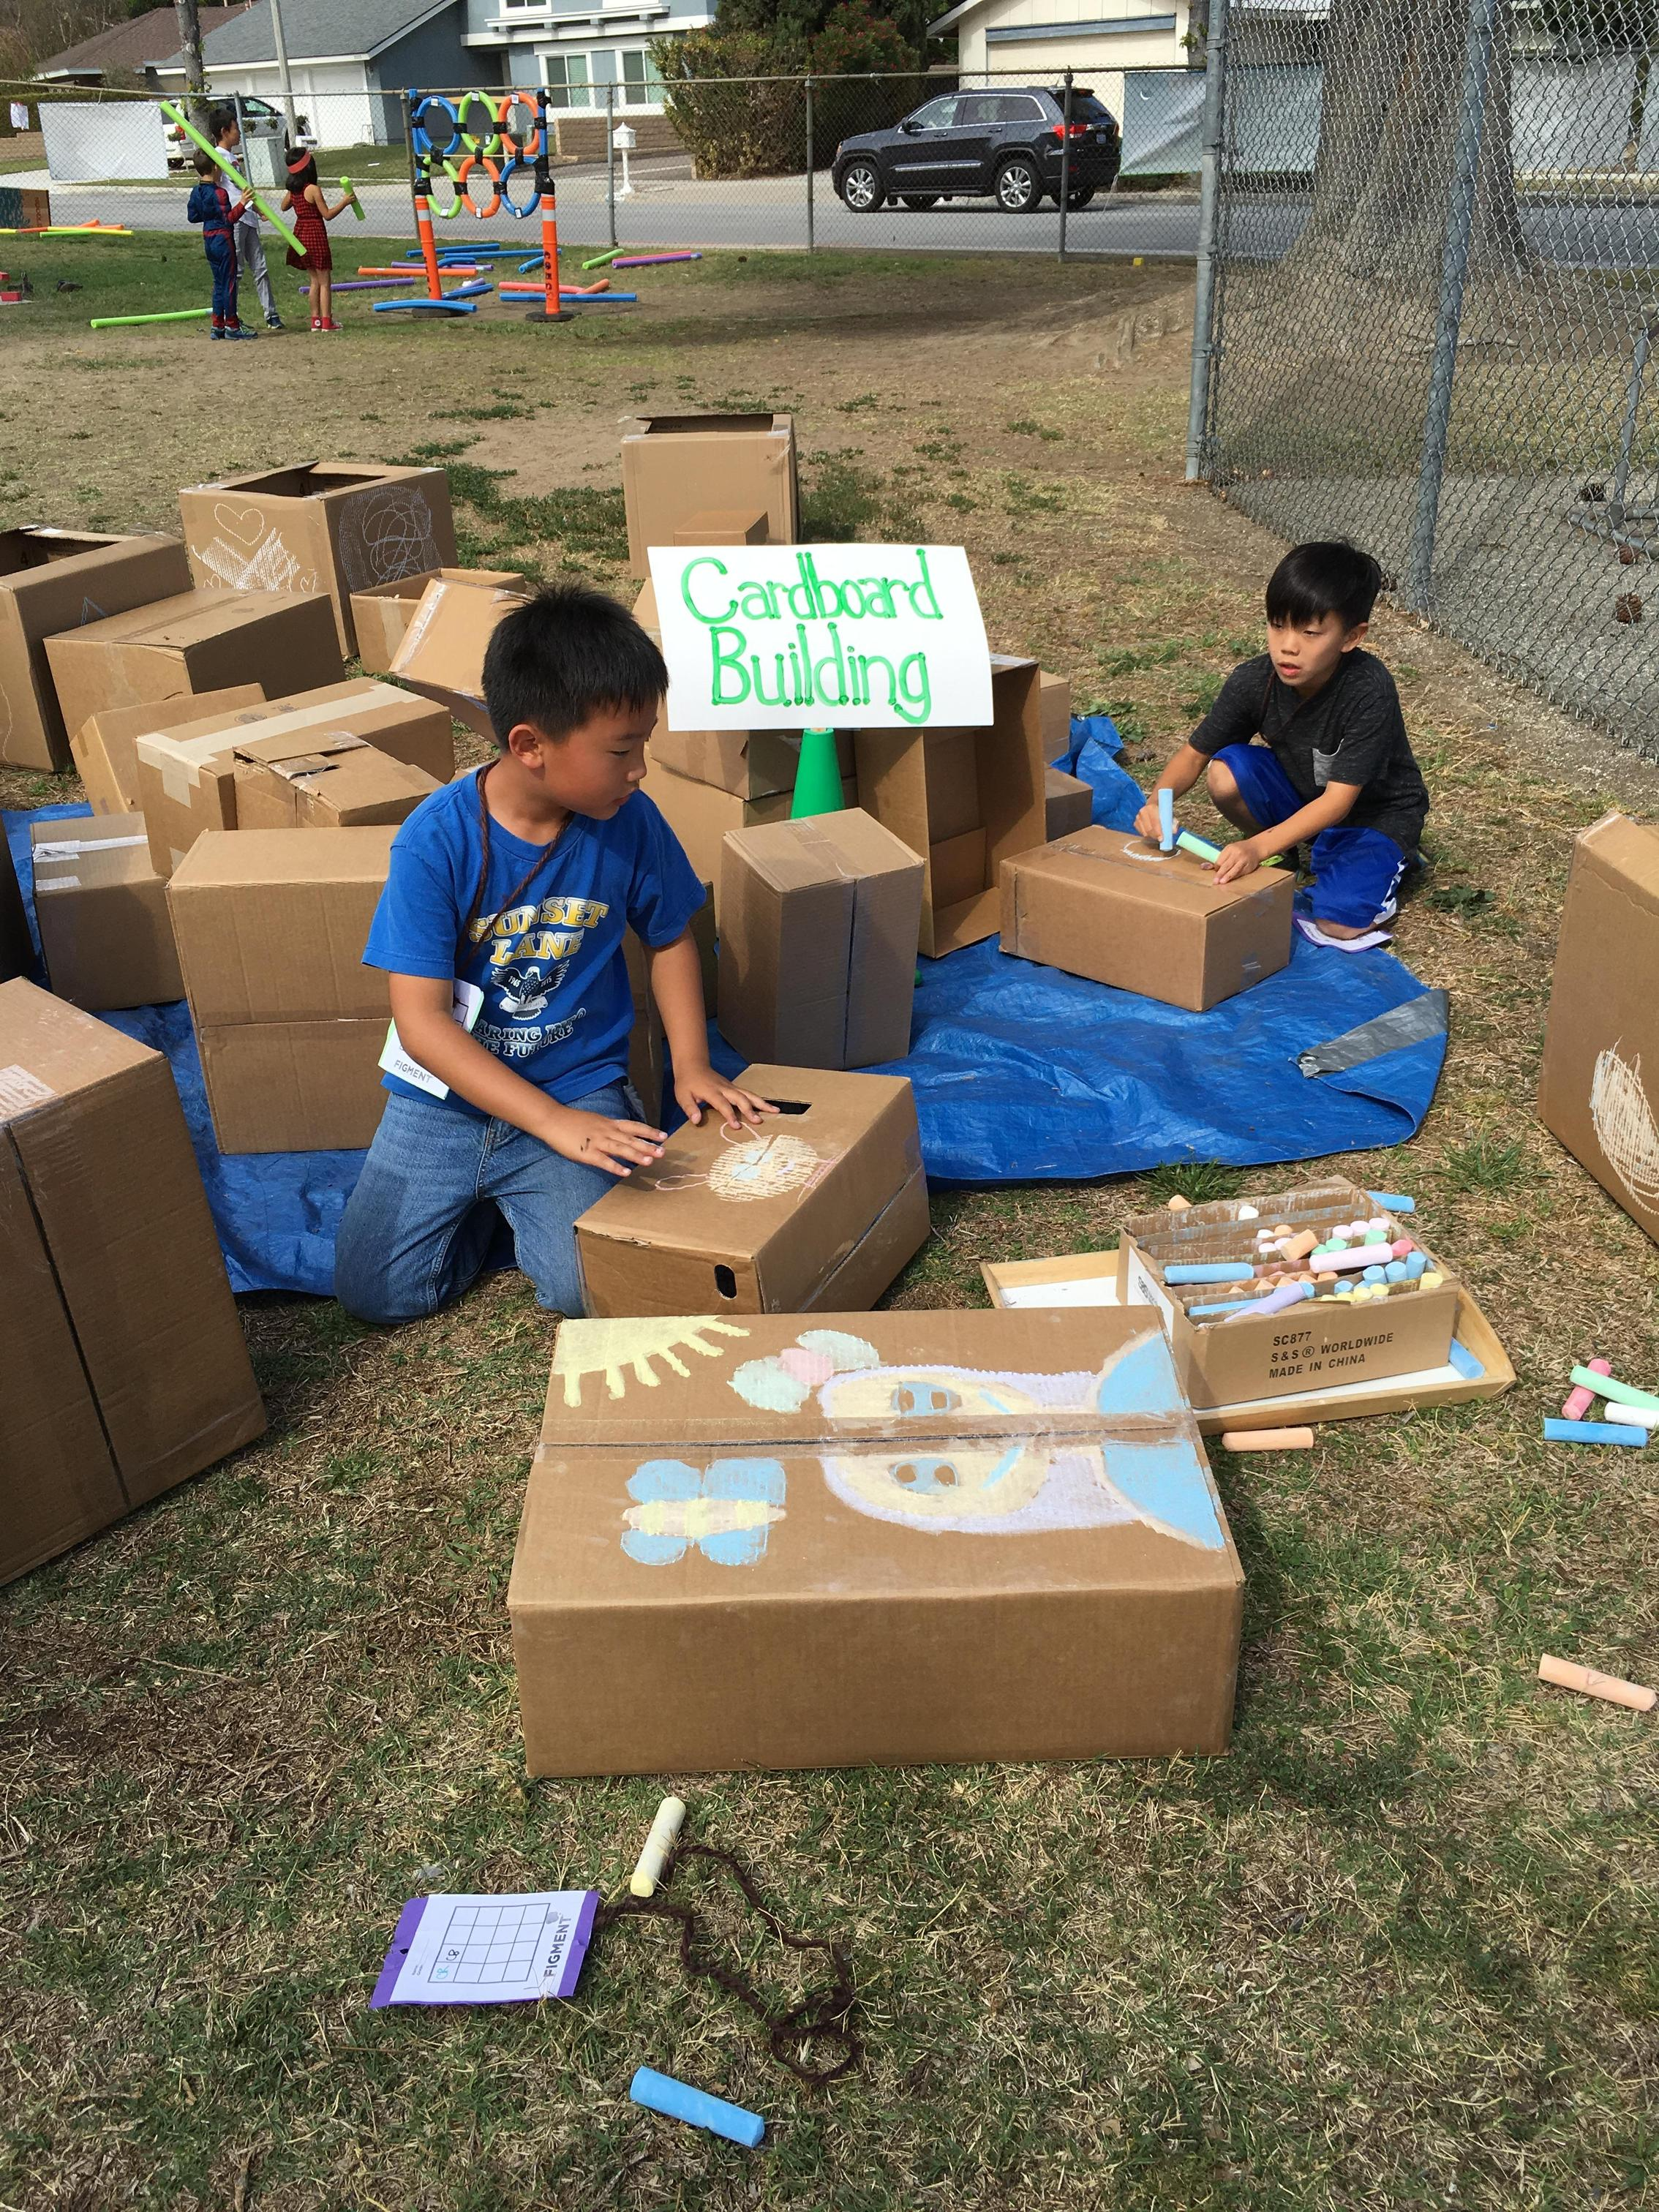 Two children building with cardboard boxes